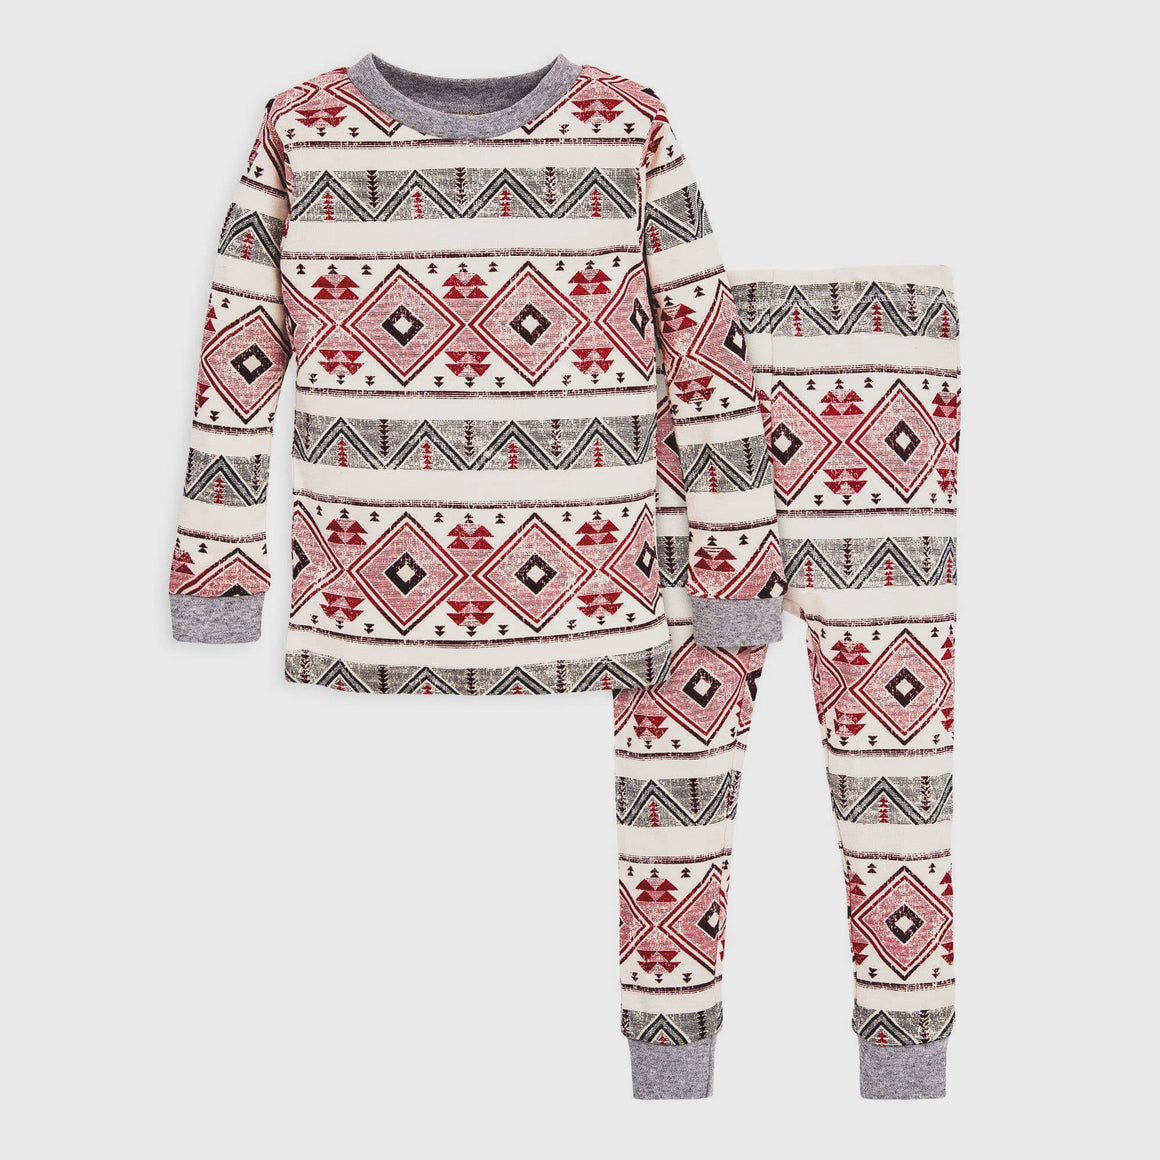 Children's Holiday Pajama Set